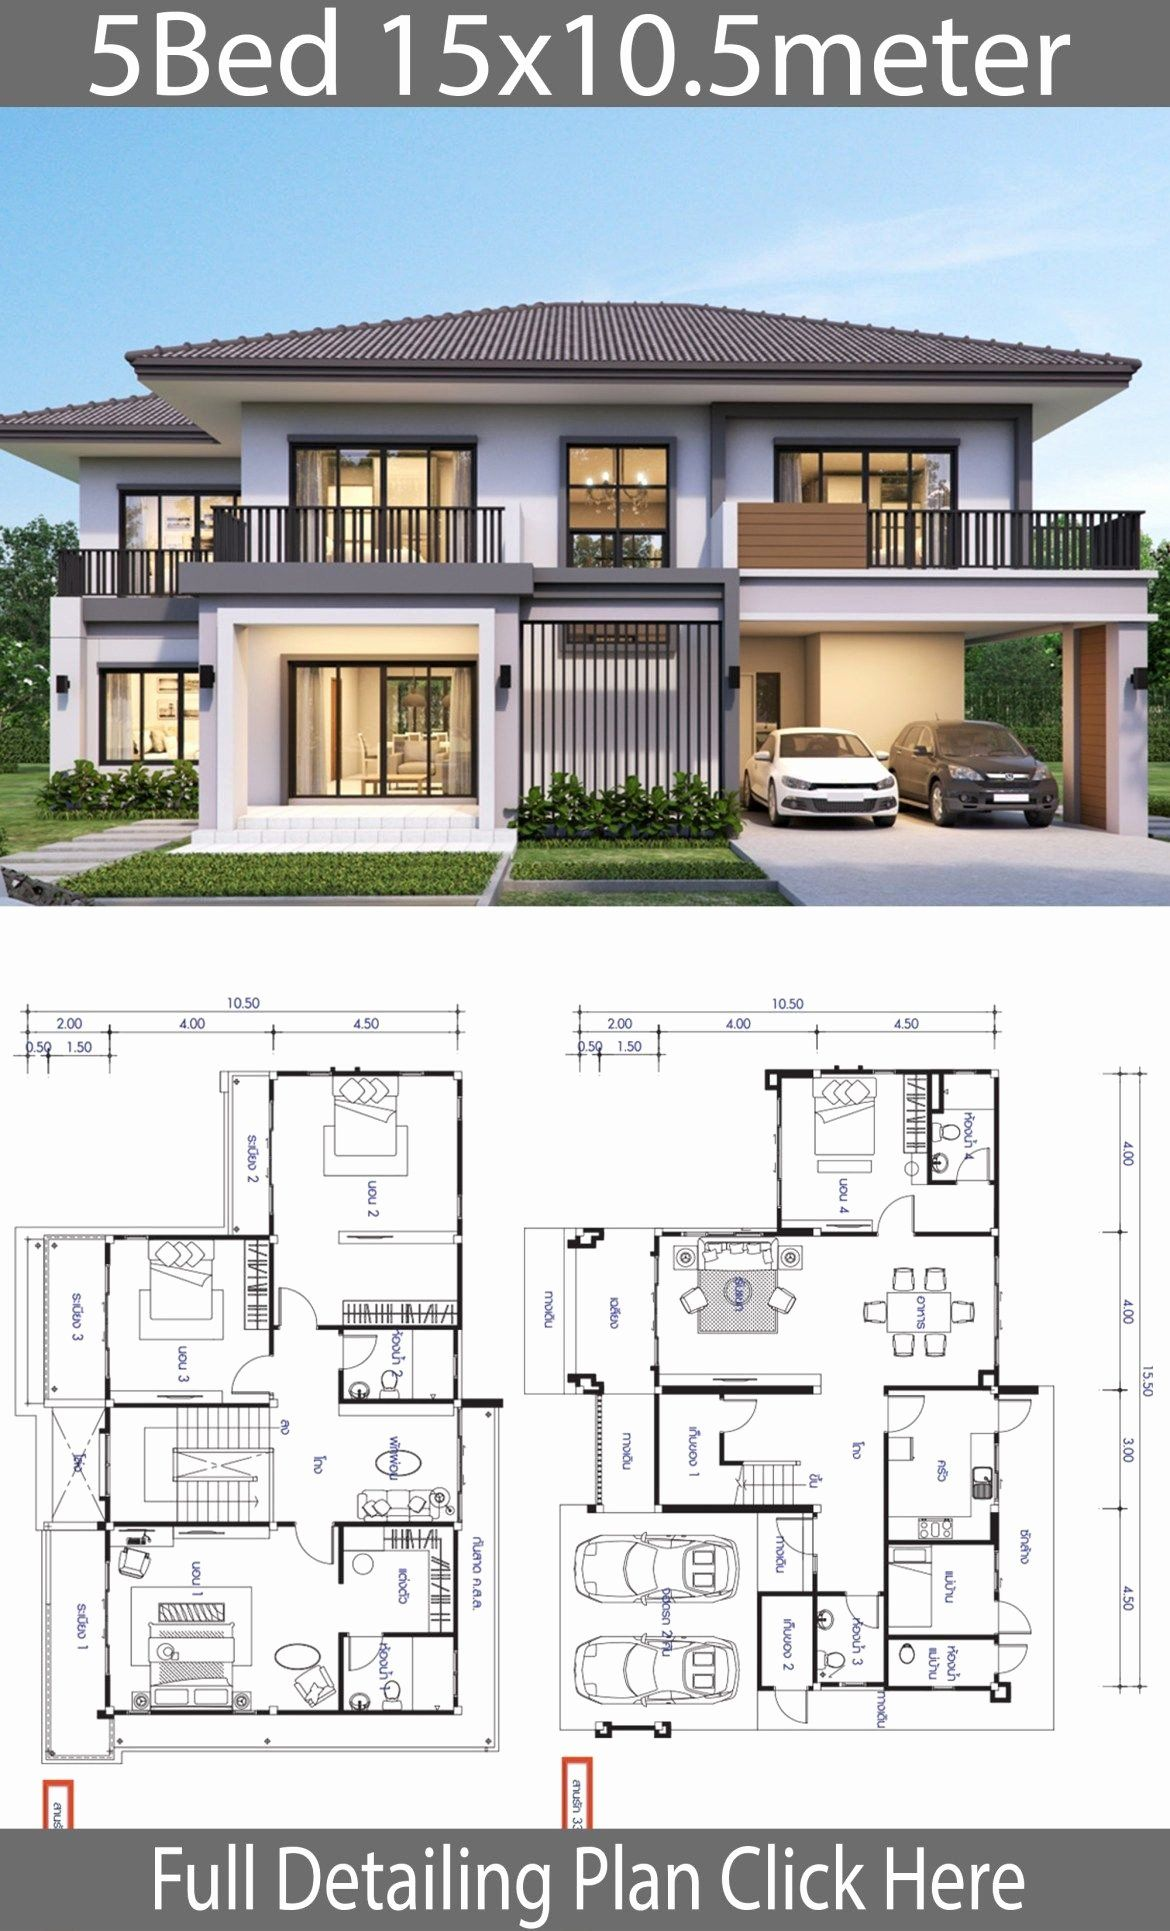 5 Br House Plans Best Of Home Design Plan 13x18m With 5 Bedrooms Site Plans Kayleighdickinson Bes In 2020 Model House Plan Bungalow House Design Bungalow House Plans